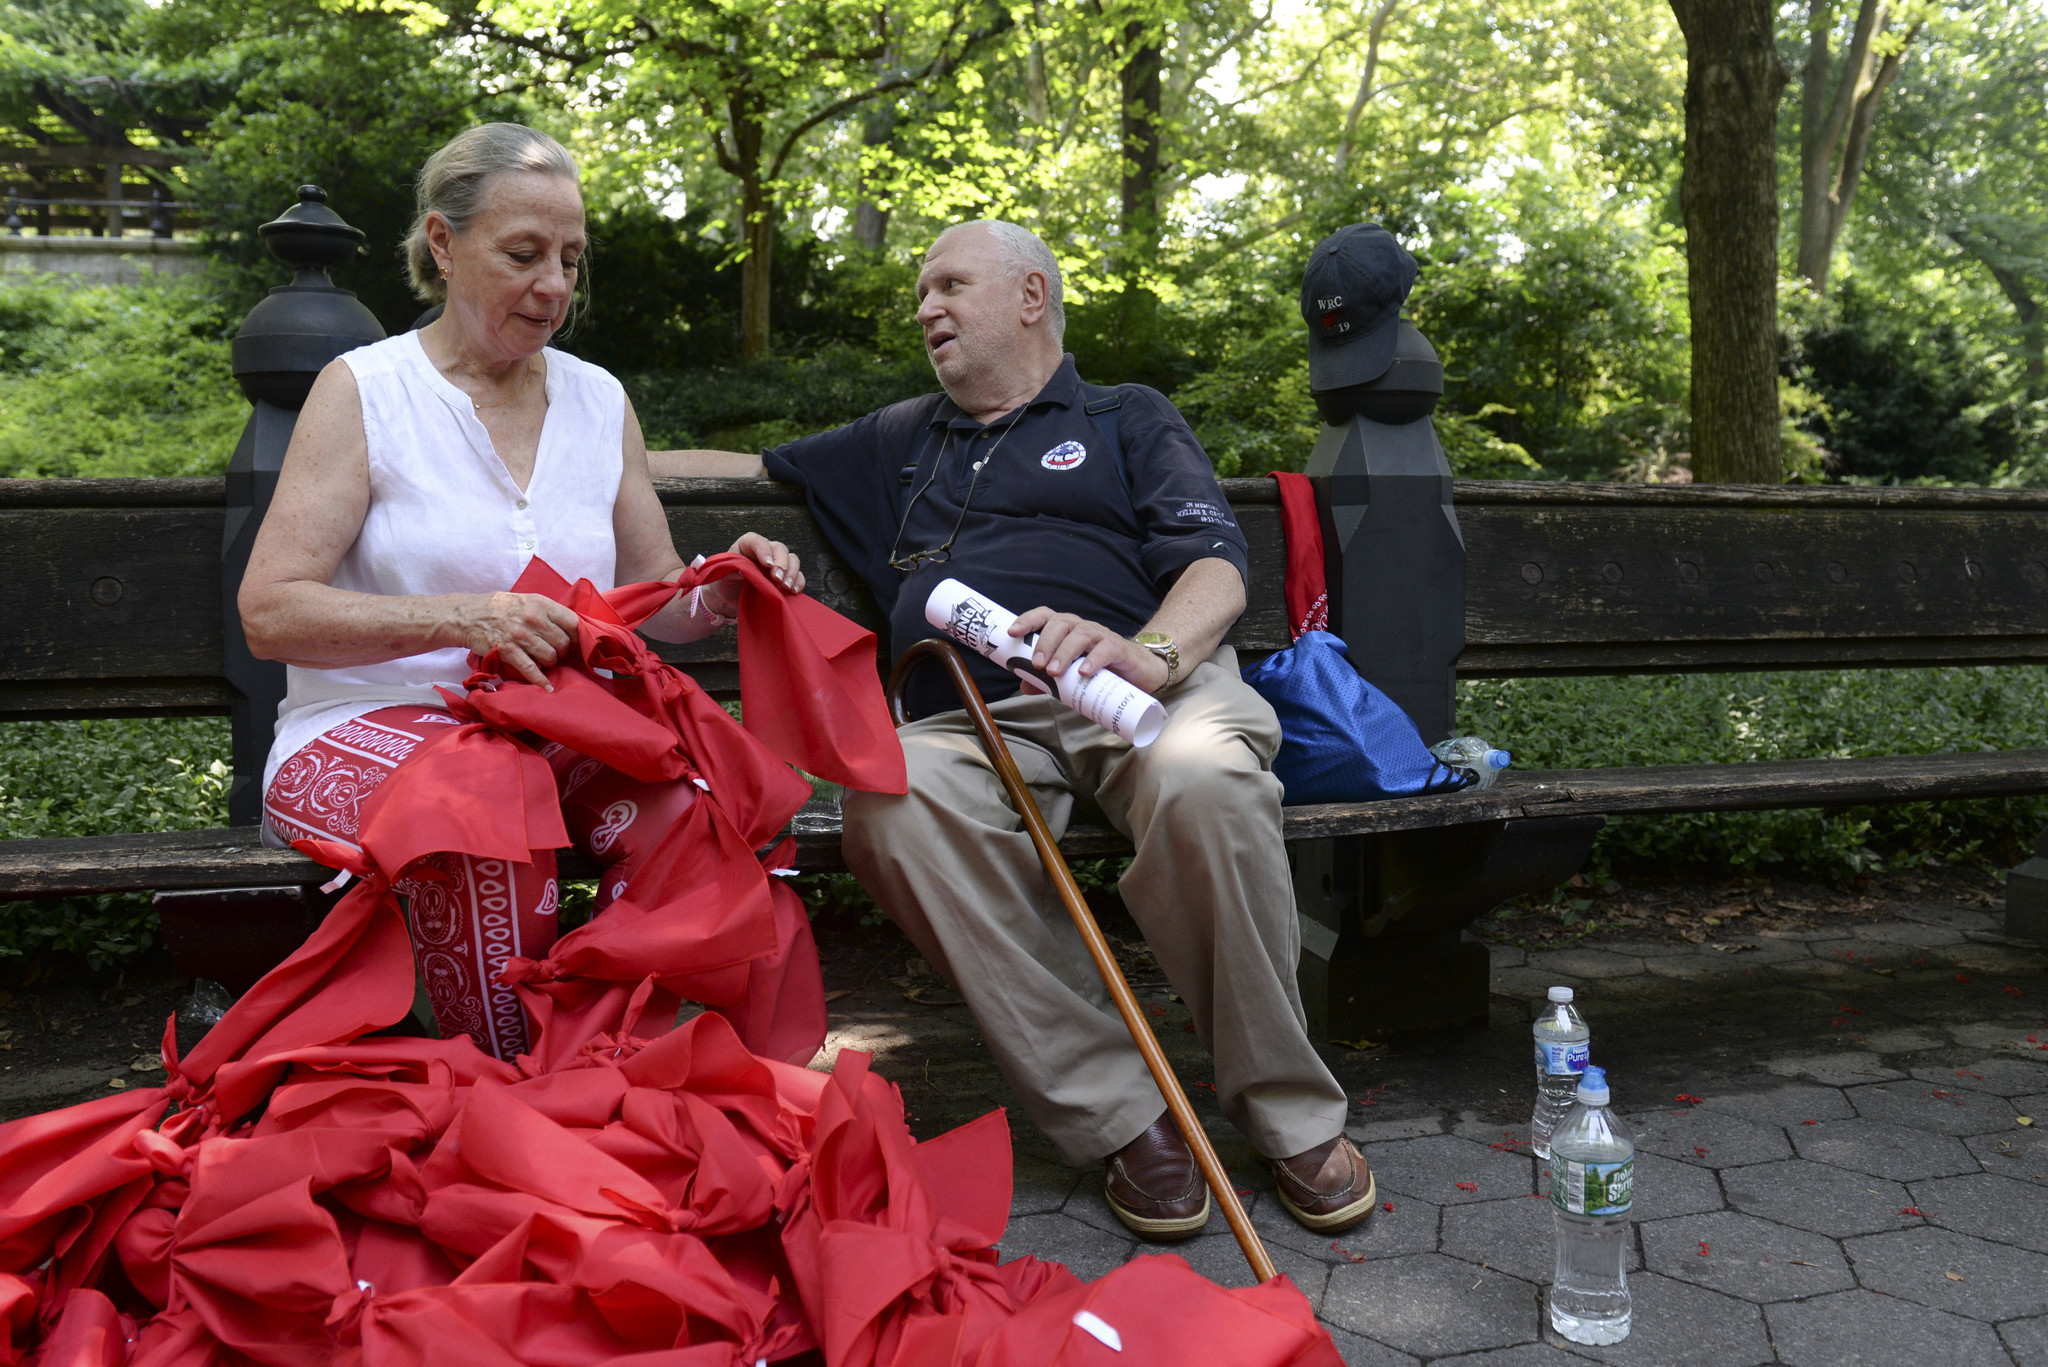 Participants tie bandannas together to break record in honor of fallen 9/11 hero | New York Daily News